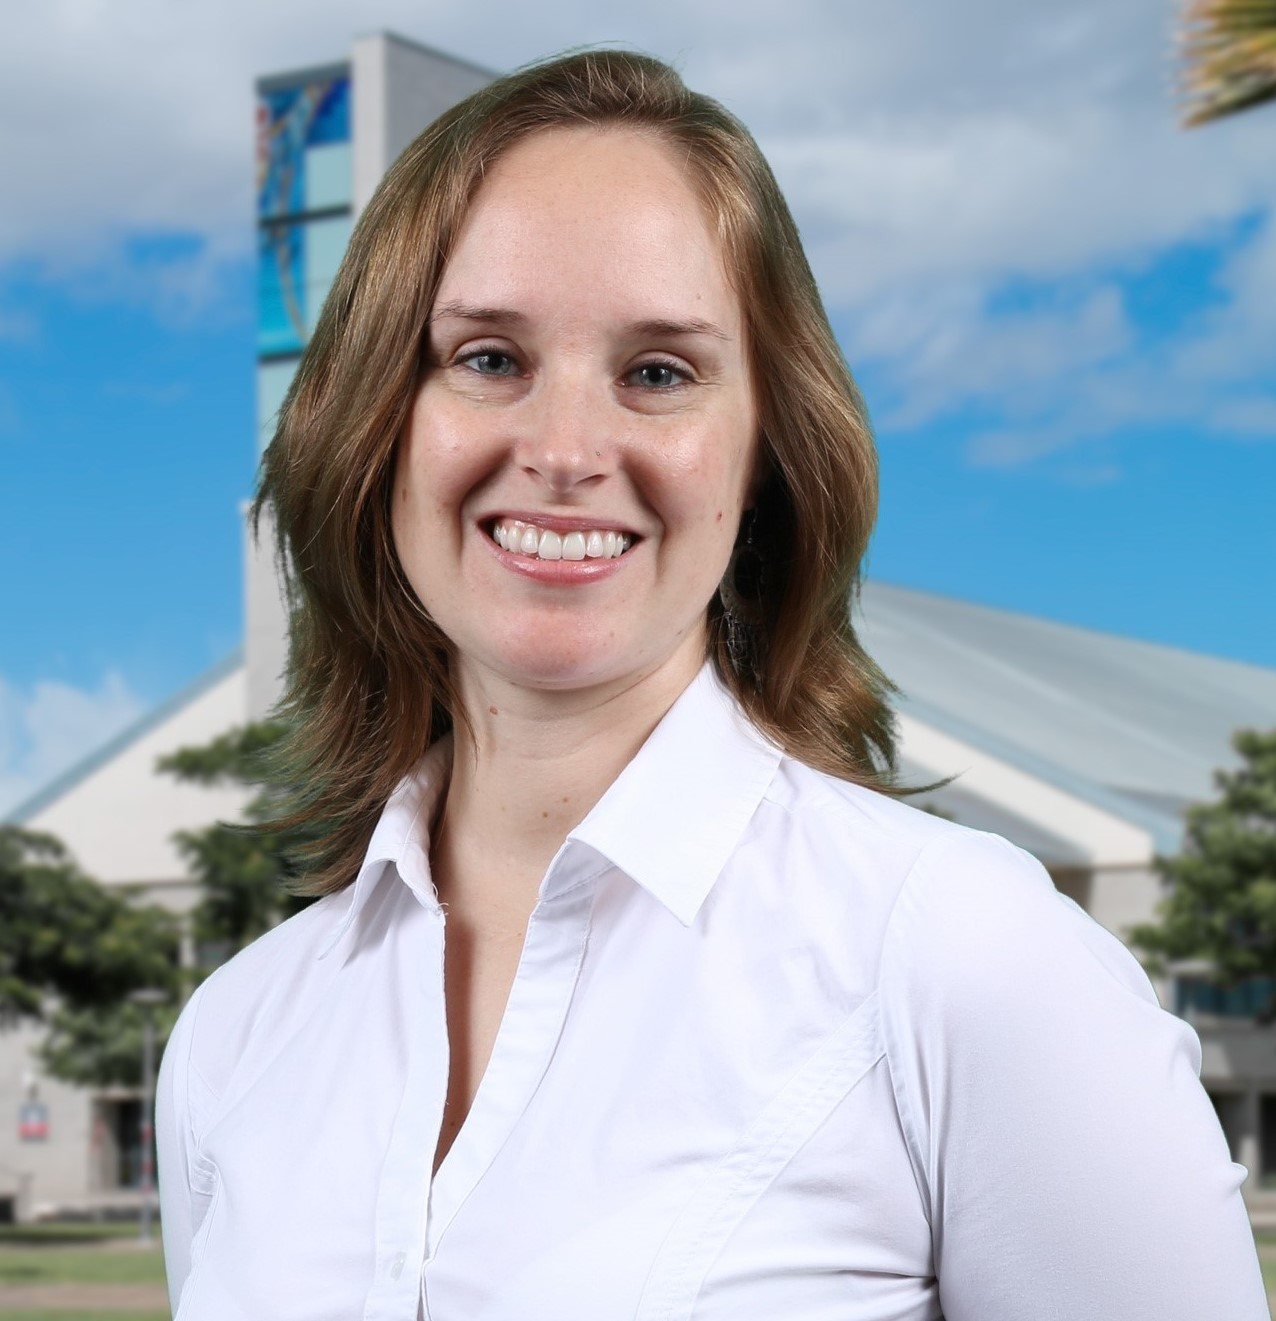 Portrait photo of Dr. Jennifer Byrnes. She is wearing a white blouse and smiling. The backdrop is the UH West Oahu library building.